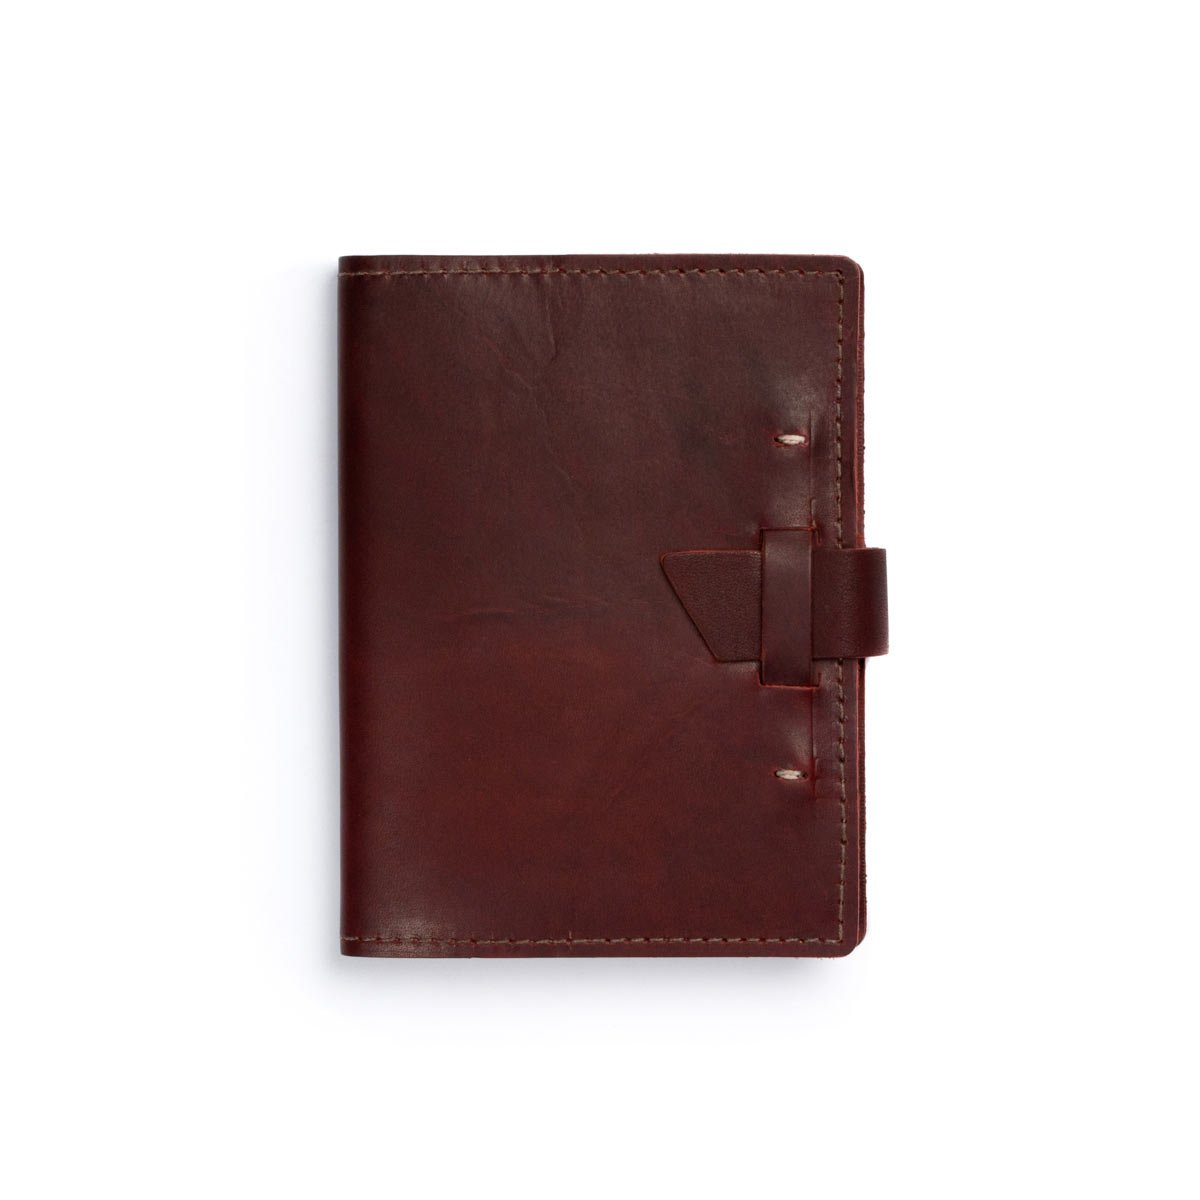 Rustico Wasatch Leather Journal Burgundy by Rustico